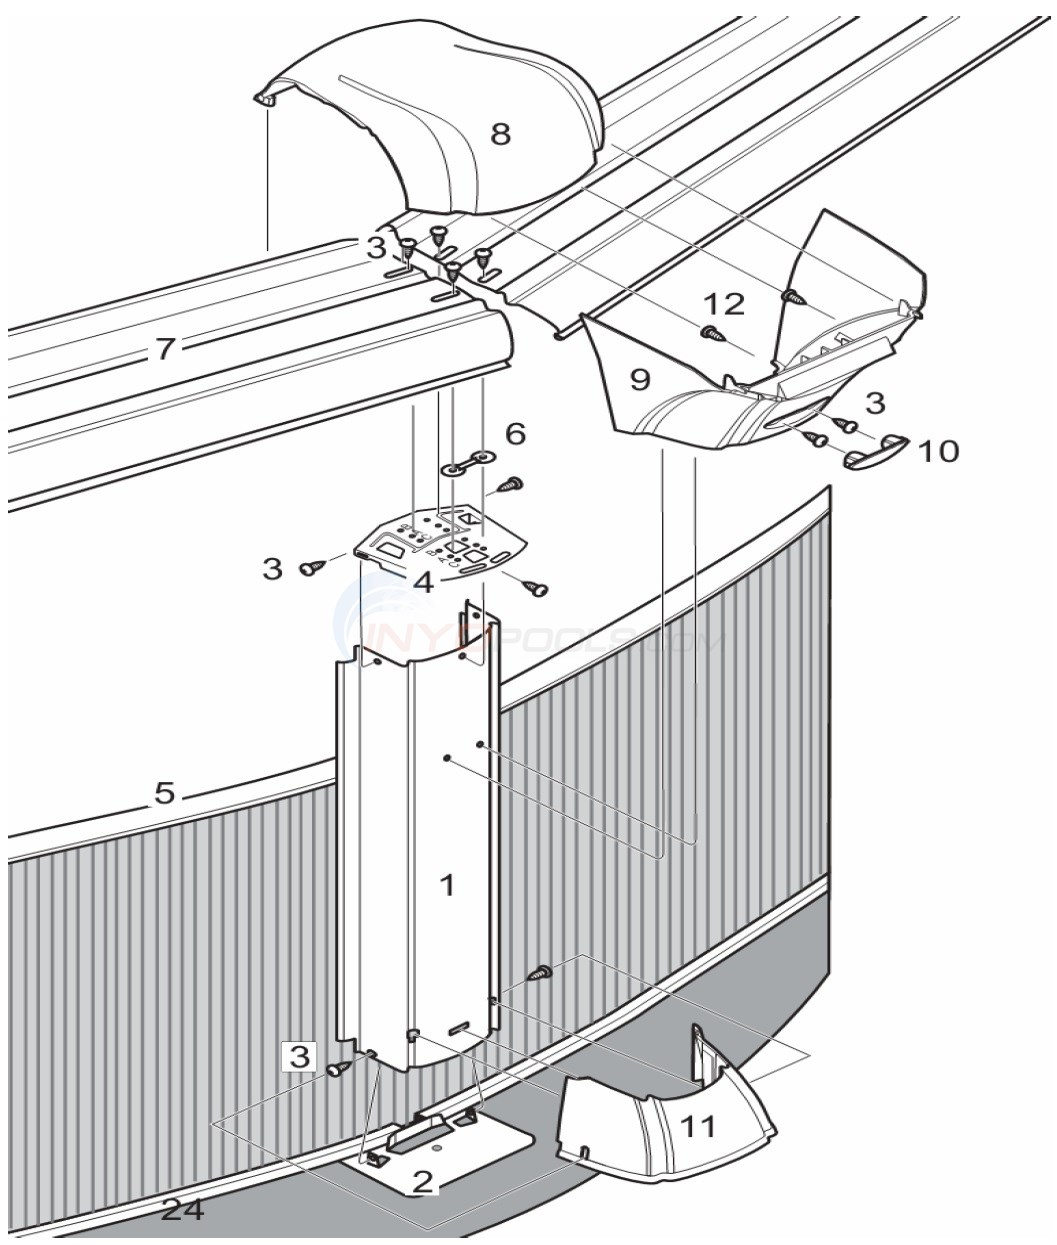 "Belize 21' Round 52"" Wall (Steel Top Rail, Steel Upright) Diagram"